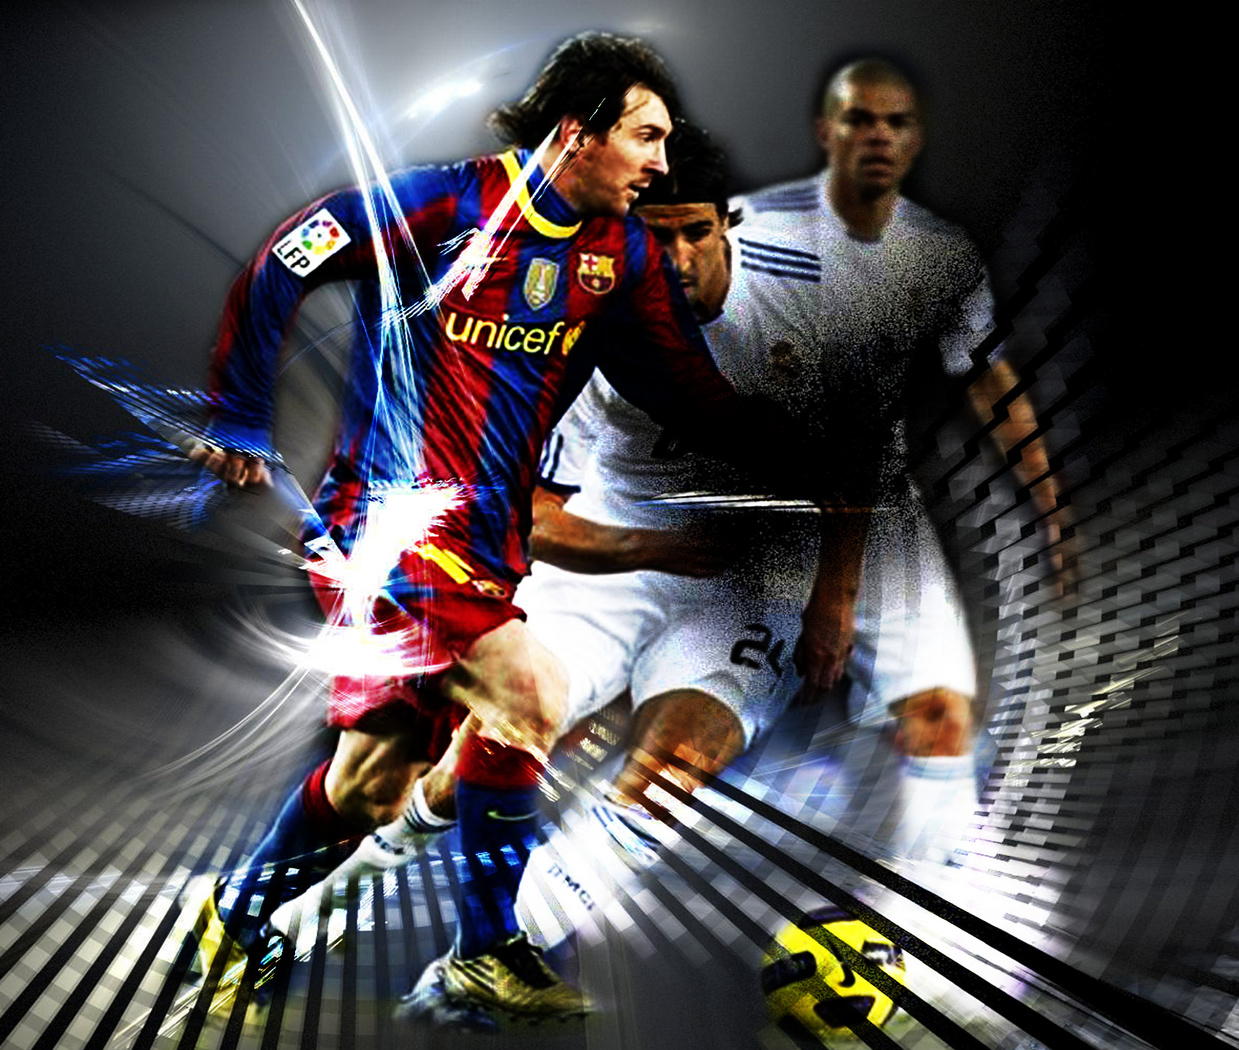 Messi 3d Wallpaper 2017 Lionel Messi 2013 Wallpaper Lionel Messi Best Soccer Player